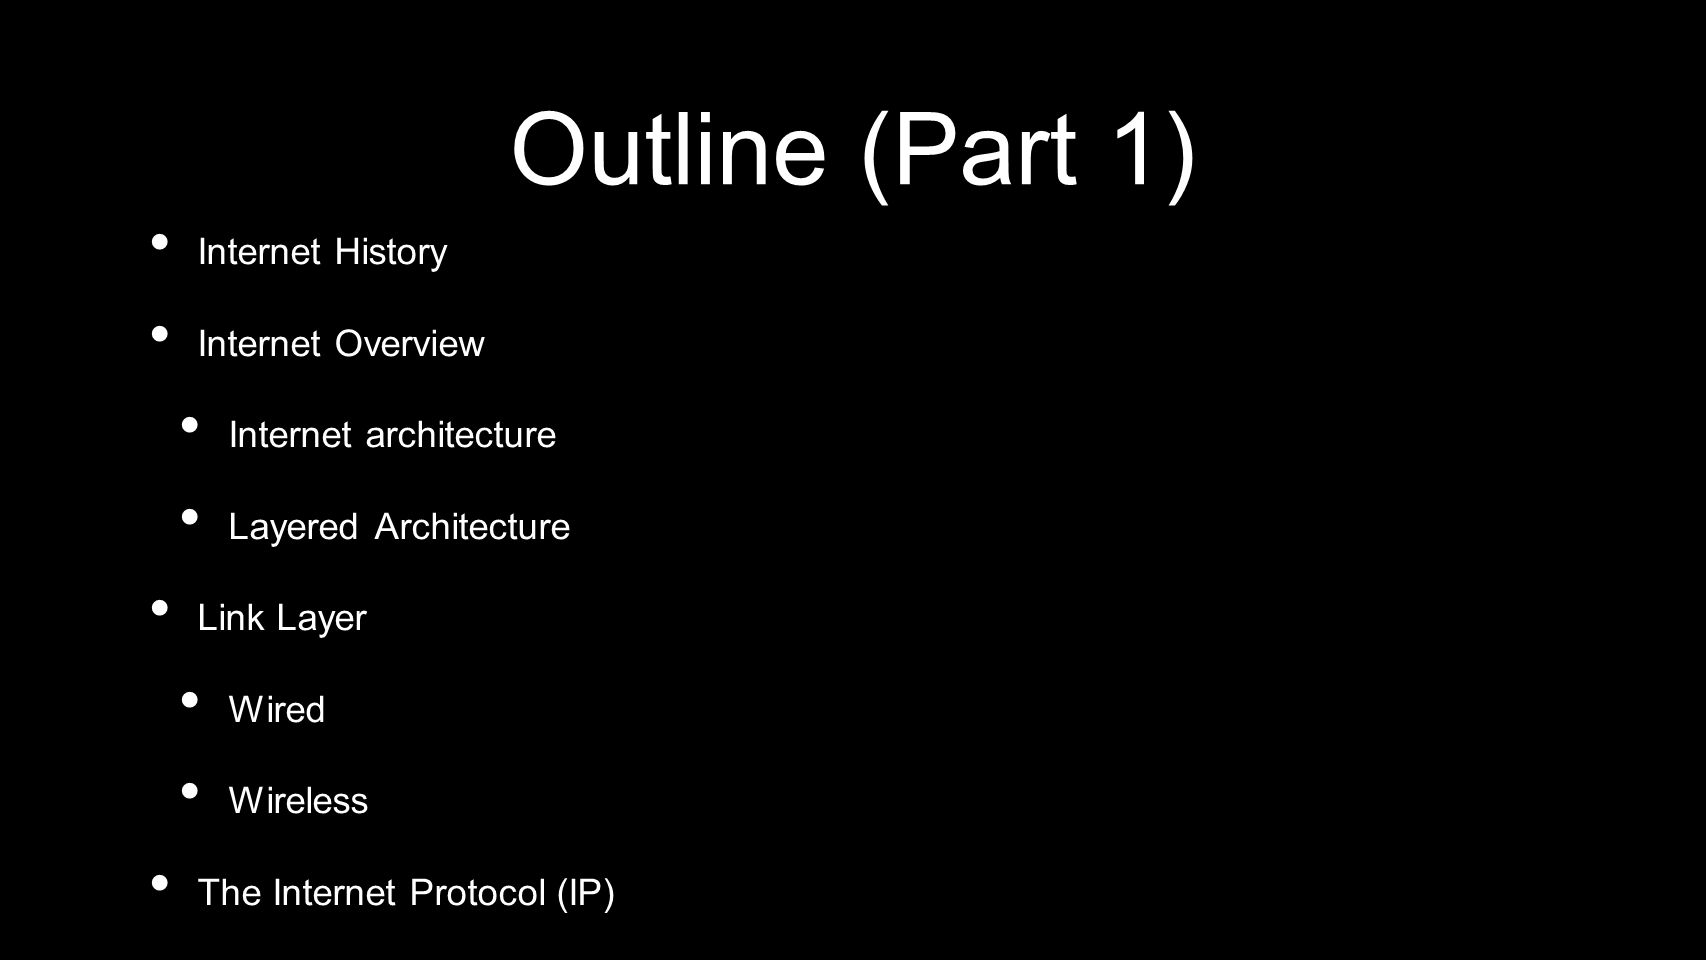 Outline (Part 1) Internet History Internet Overview Internet architecture Layered Architecture Link Layer Wired Wireless The Internet Protocol (IP) Do